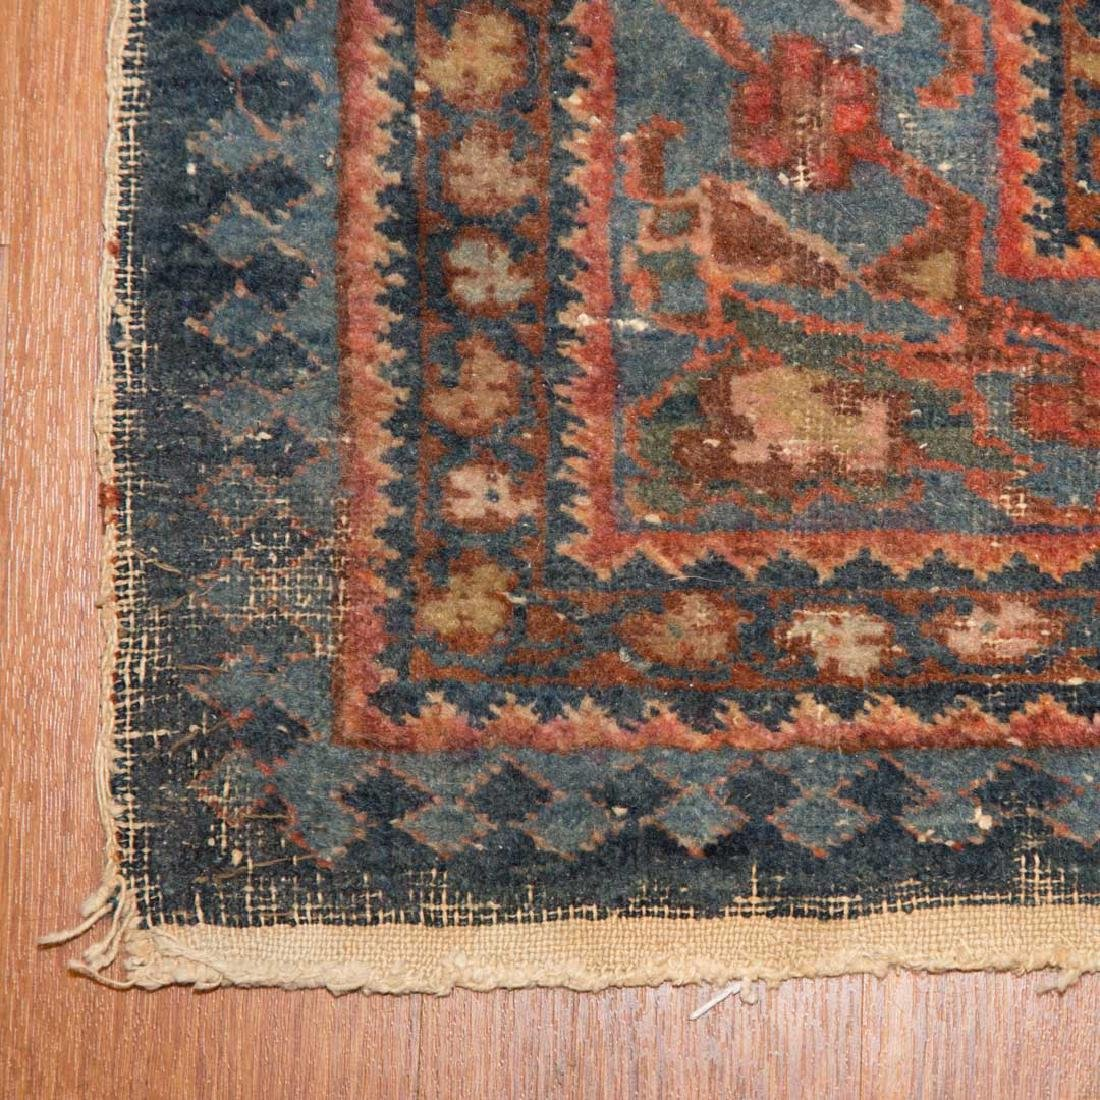 Two Persian Hamadan rugs, Iran, circa 1940 - 2